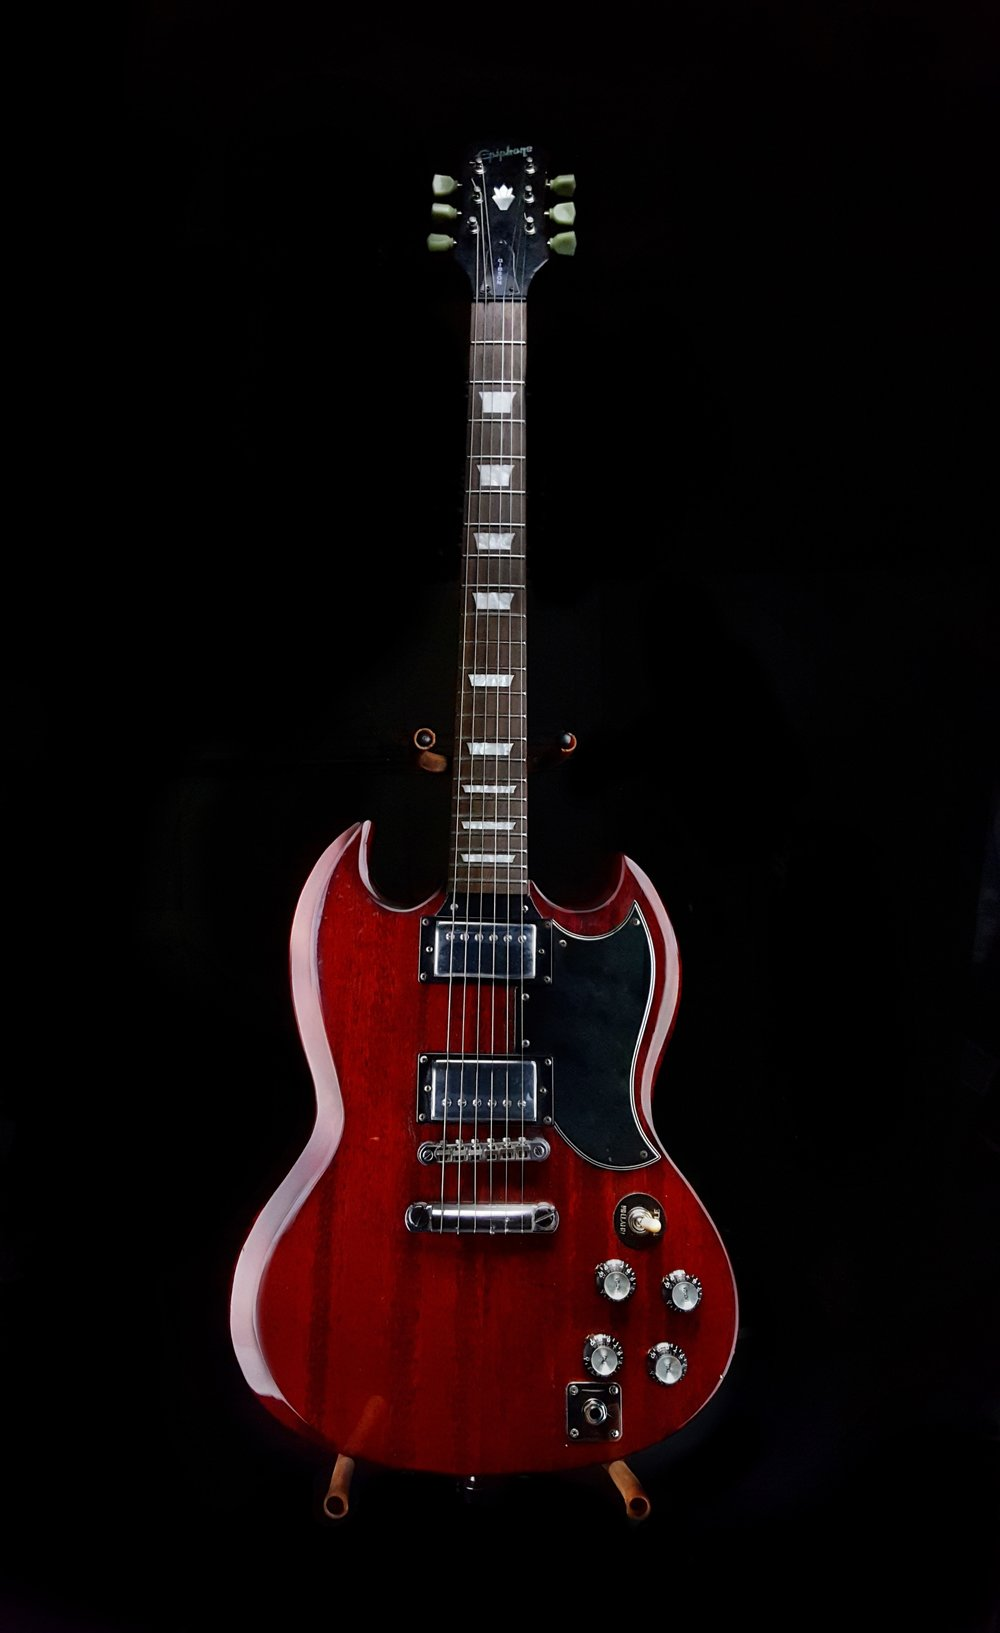 sg?format=750w shop builds ep 2 the unicorn epiphone g 400 demo guitar the wiring harness guitar at webbmarketing.co